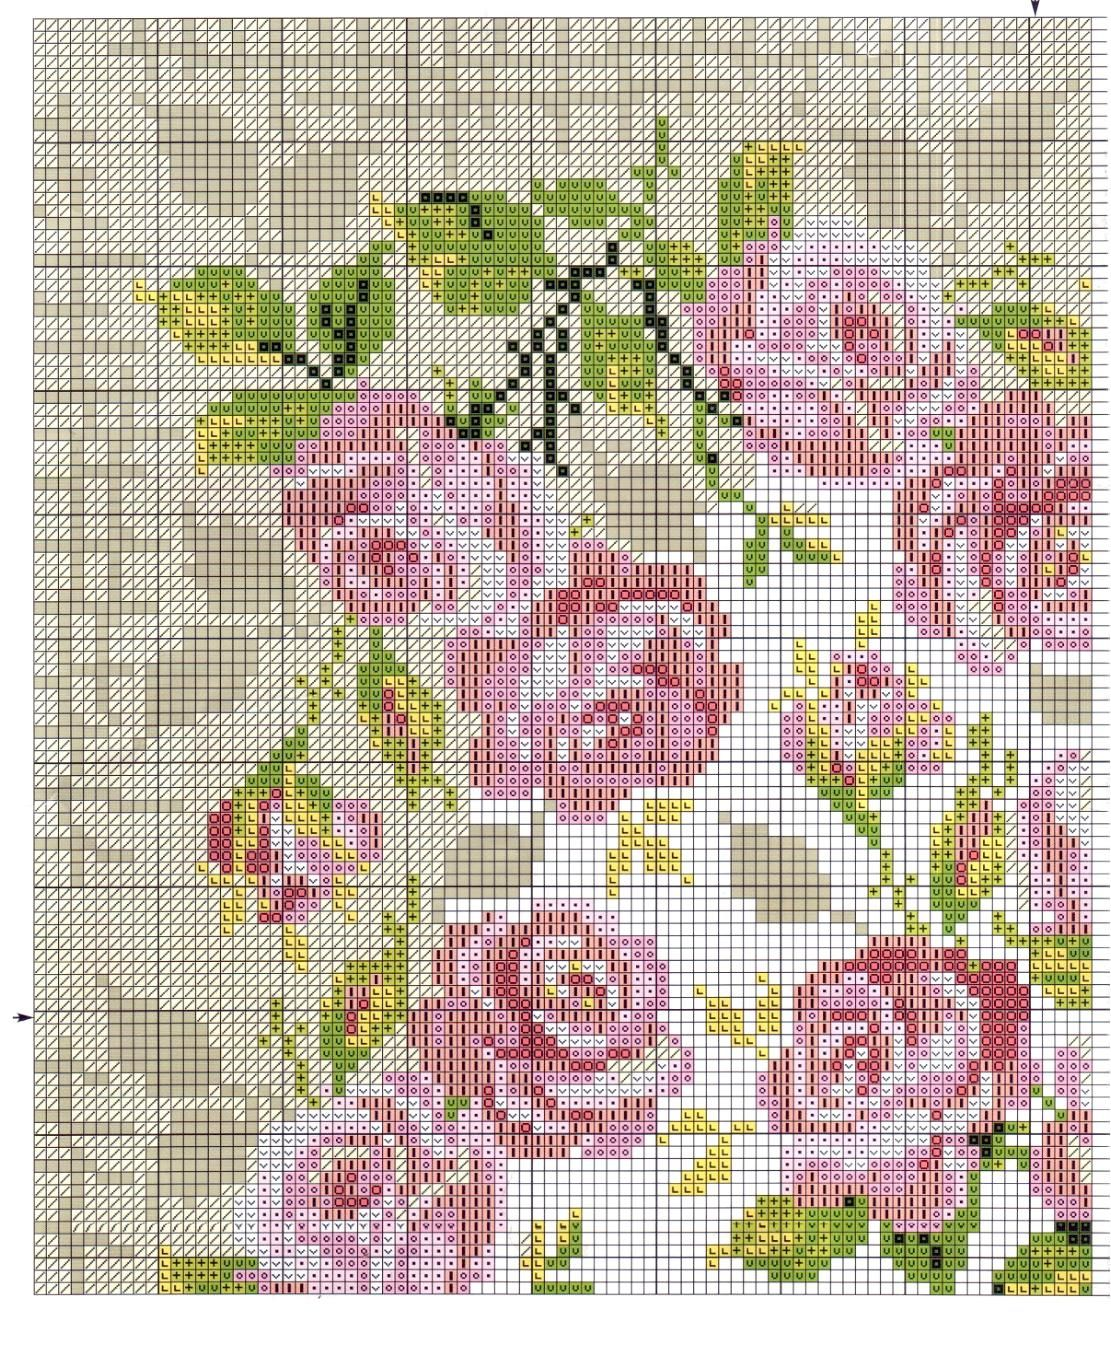 roses, cross stitch, intarsia knitting pattern | Patterns ...